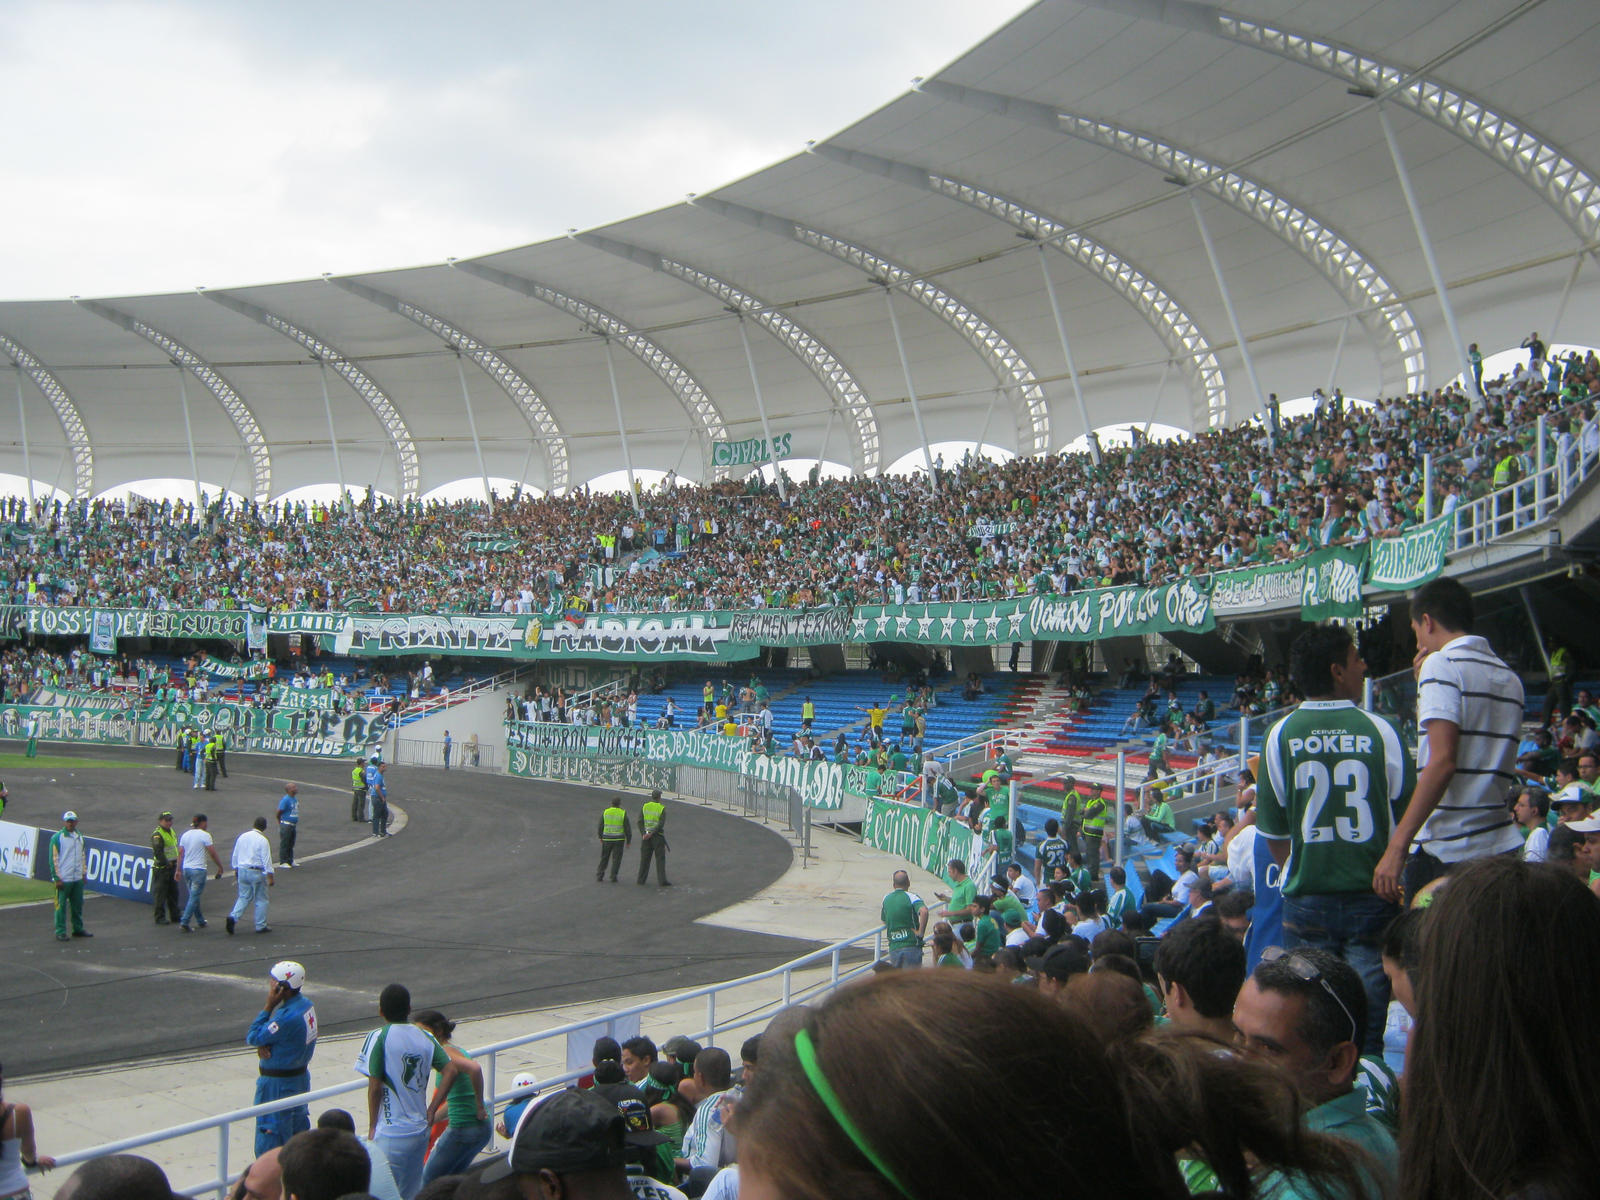 The new stadium, estadio deportivo cali, with a capacity for 55,000, is the biggest football stadium in colombia, was officially inaugurated on november 19,. Estadio Olimpico Pascual Guerrero (Sanfernandino / El